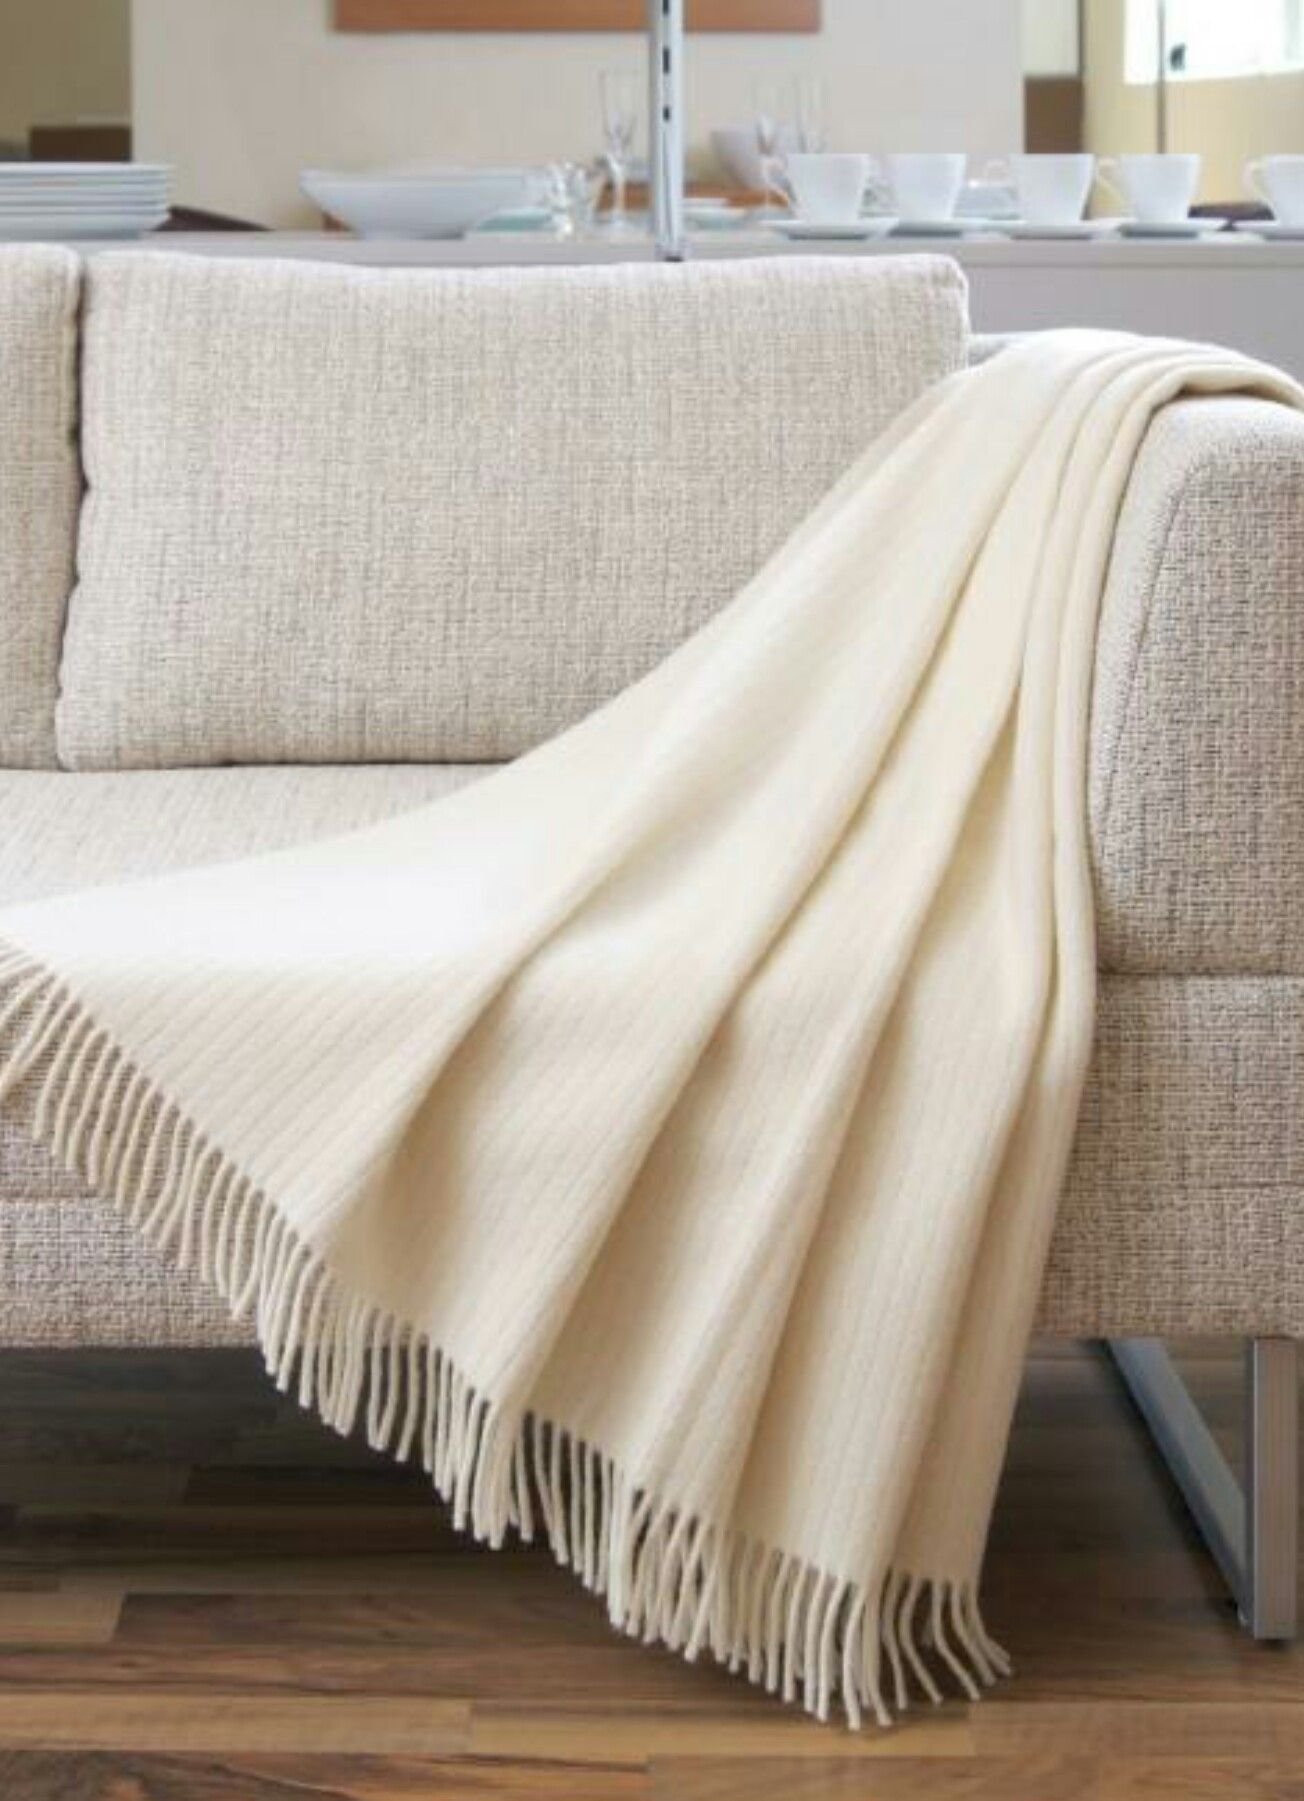 couch throw | couch throws | pinterest | couch and couch throws